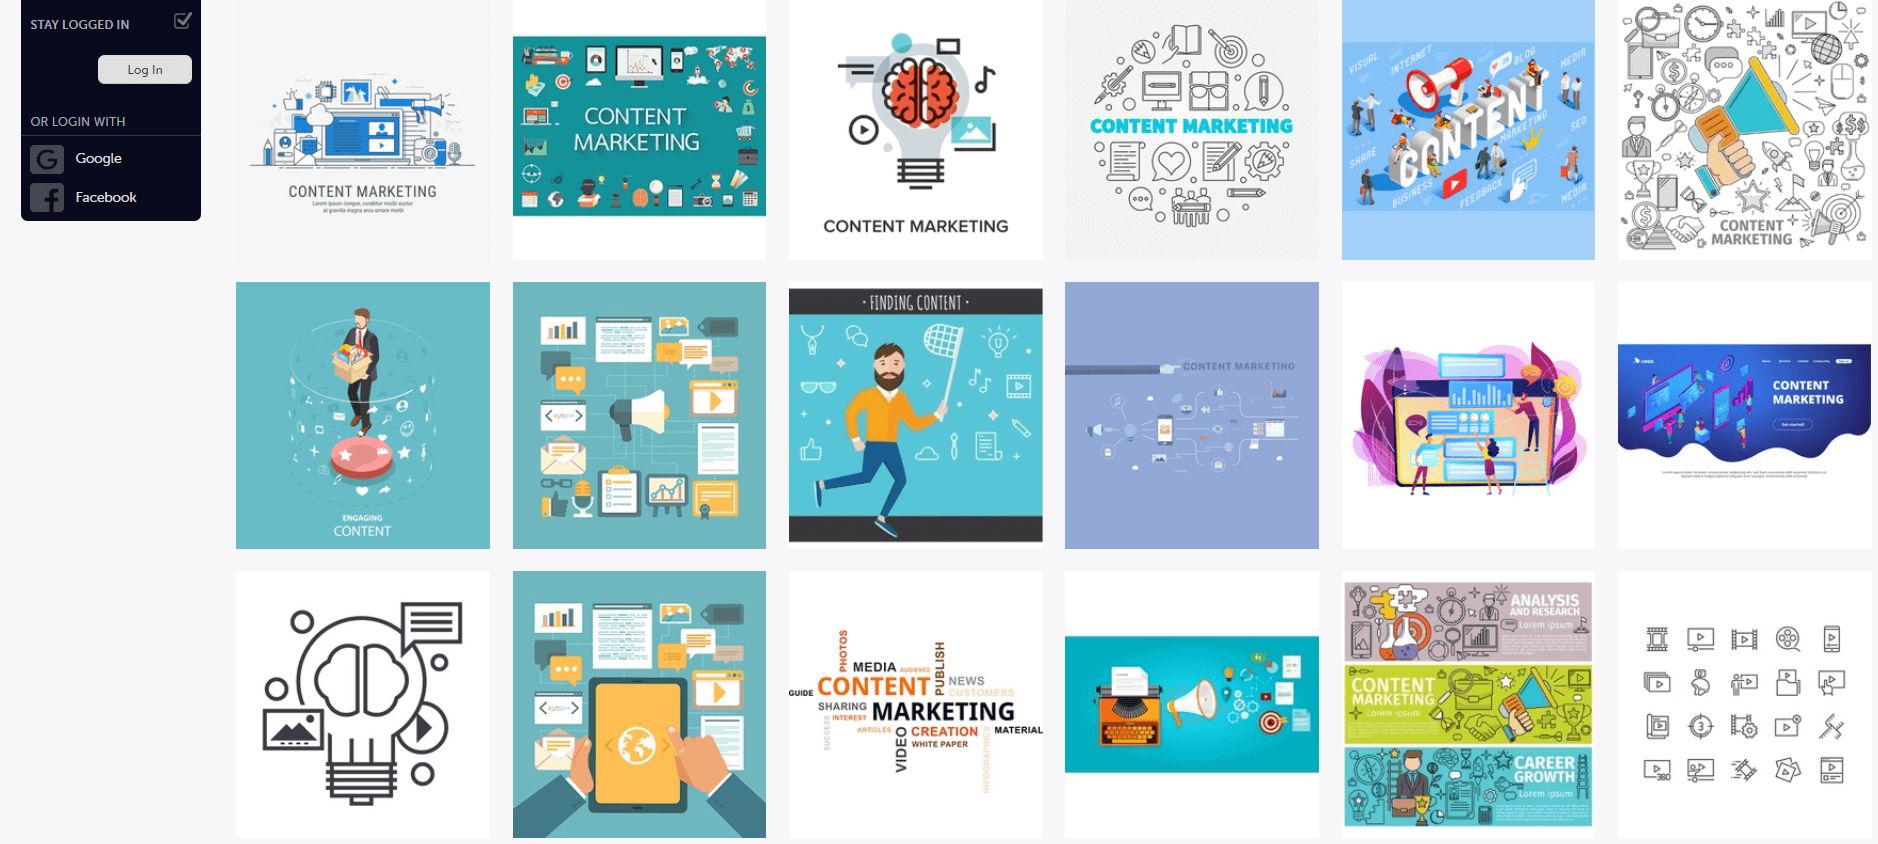 A screenshot of VectorStock results for the search query *Content Marketing*.